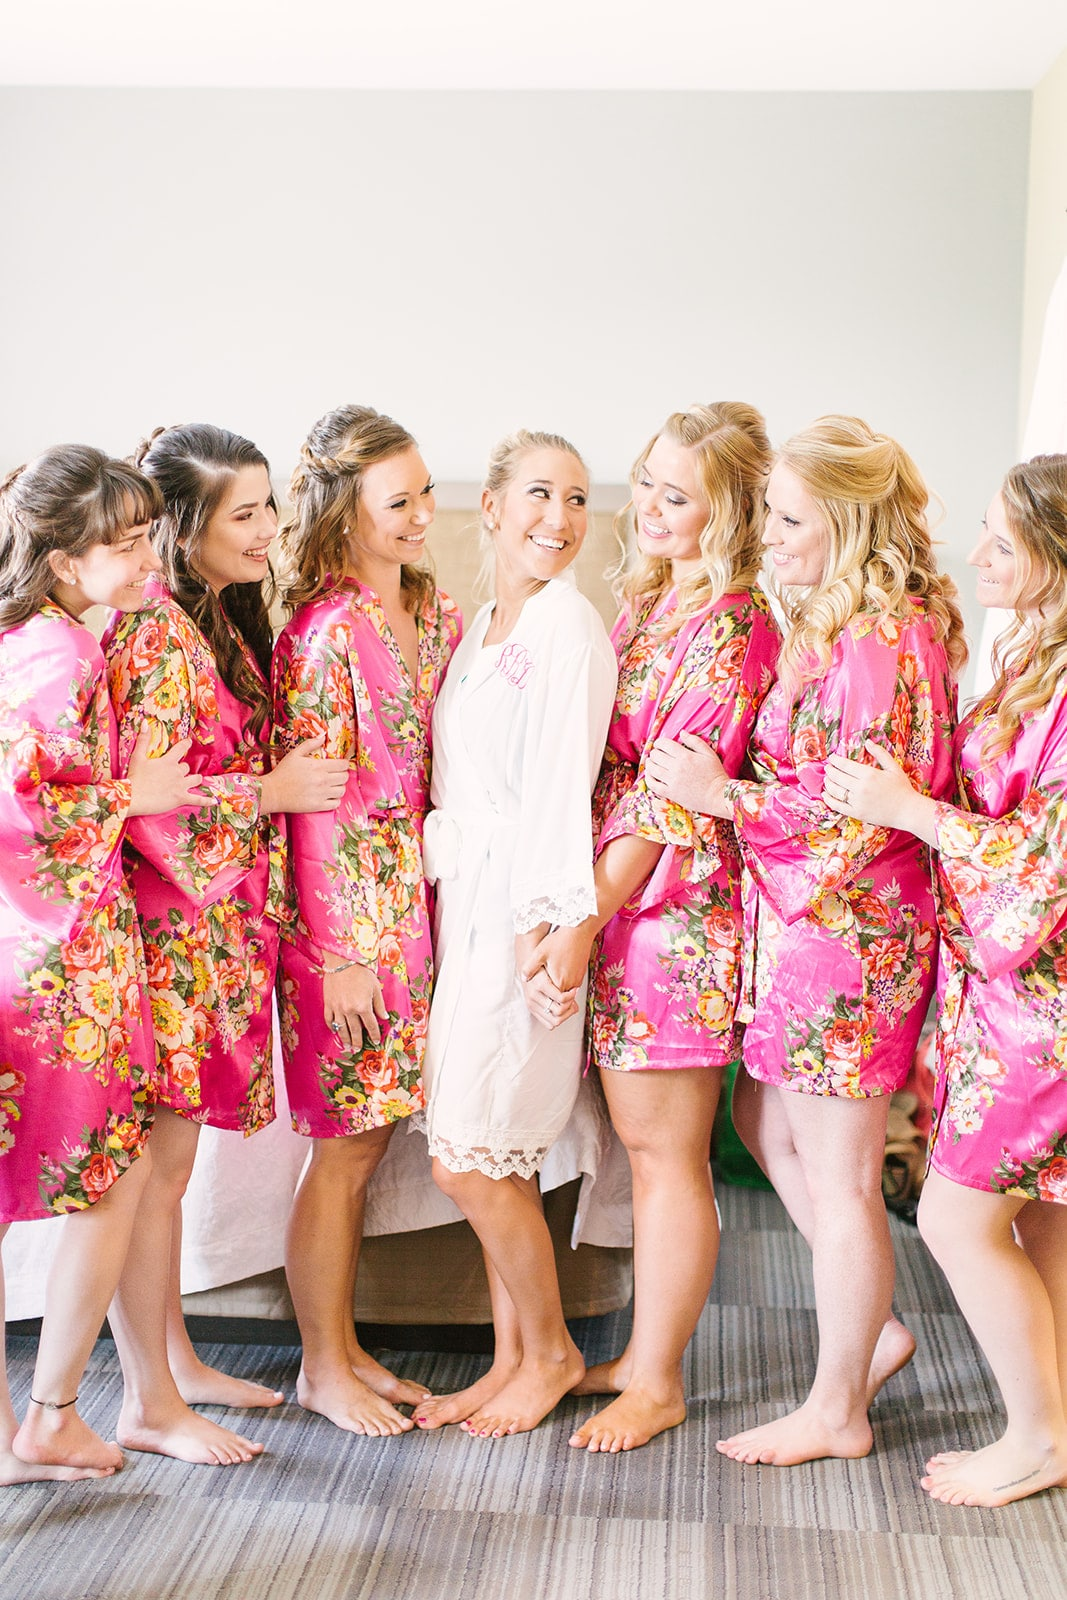 Bride poses with her bridesmaids in matching floral robes as they prepare for their spring wedding at The Diary Barn